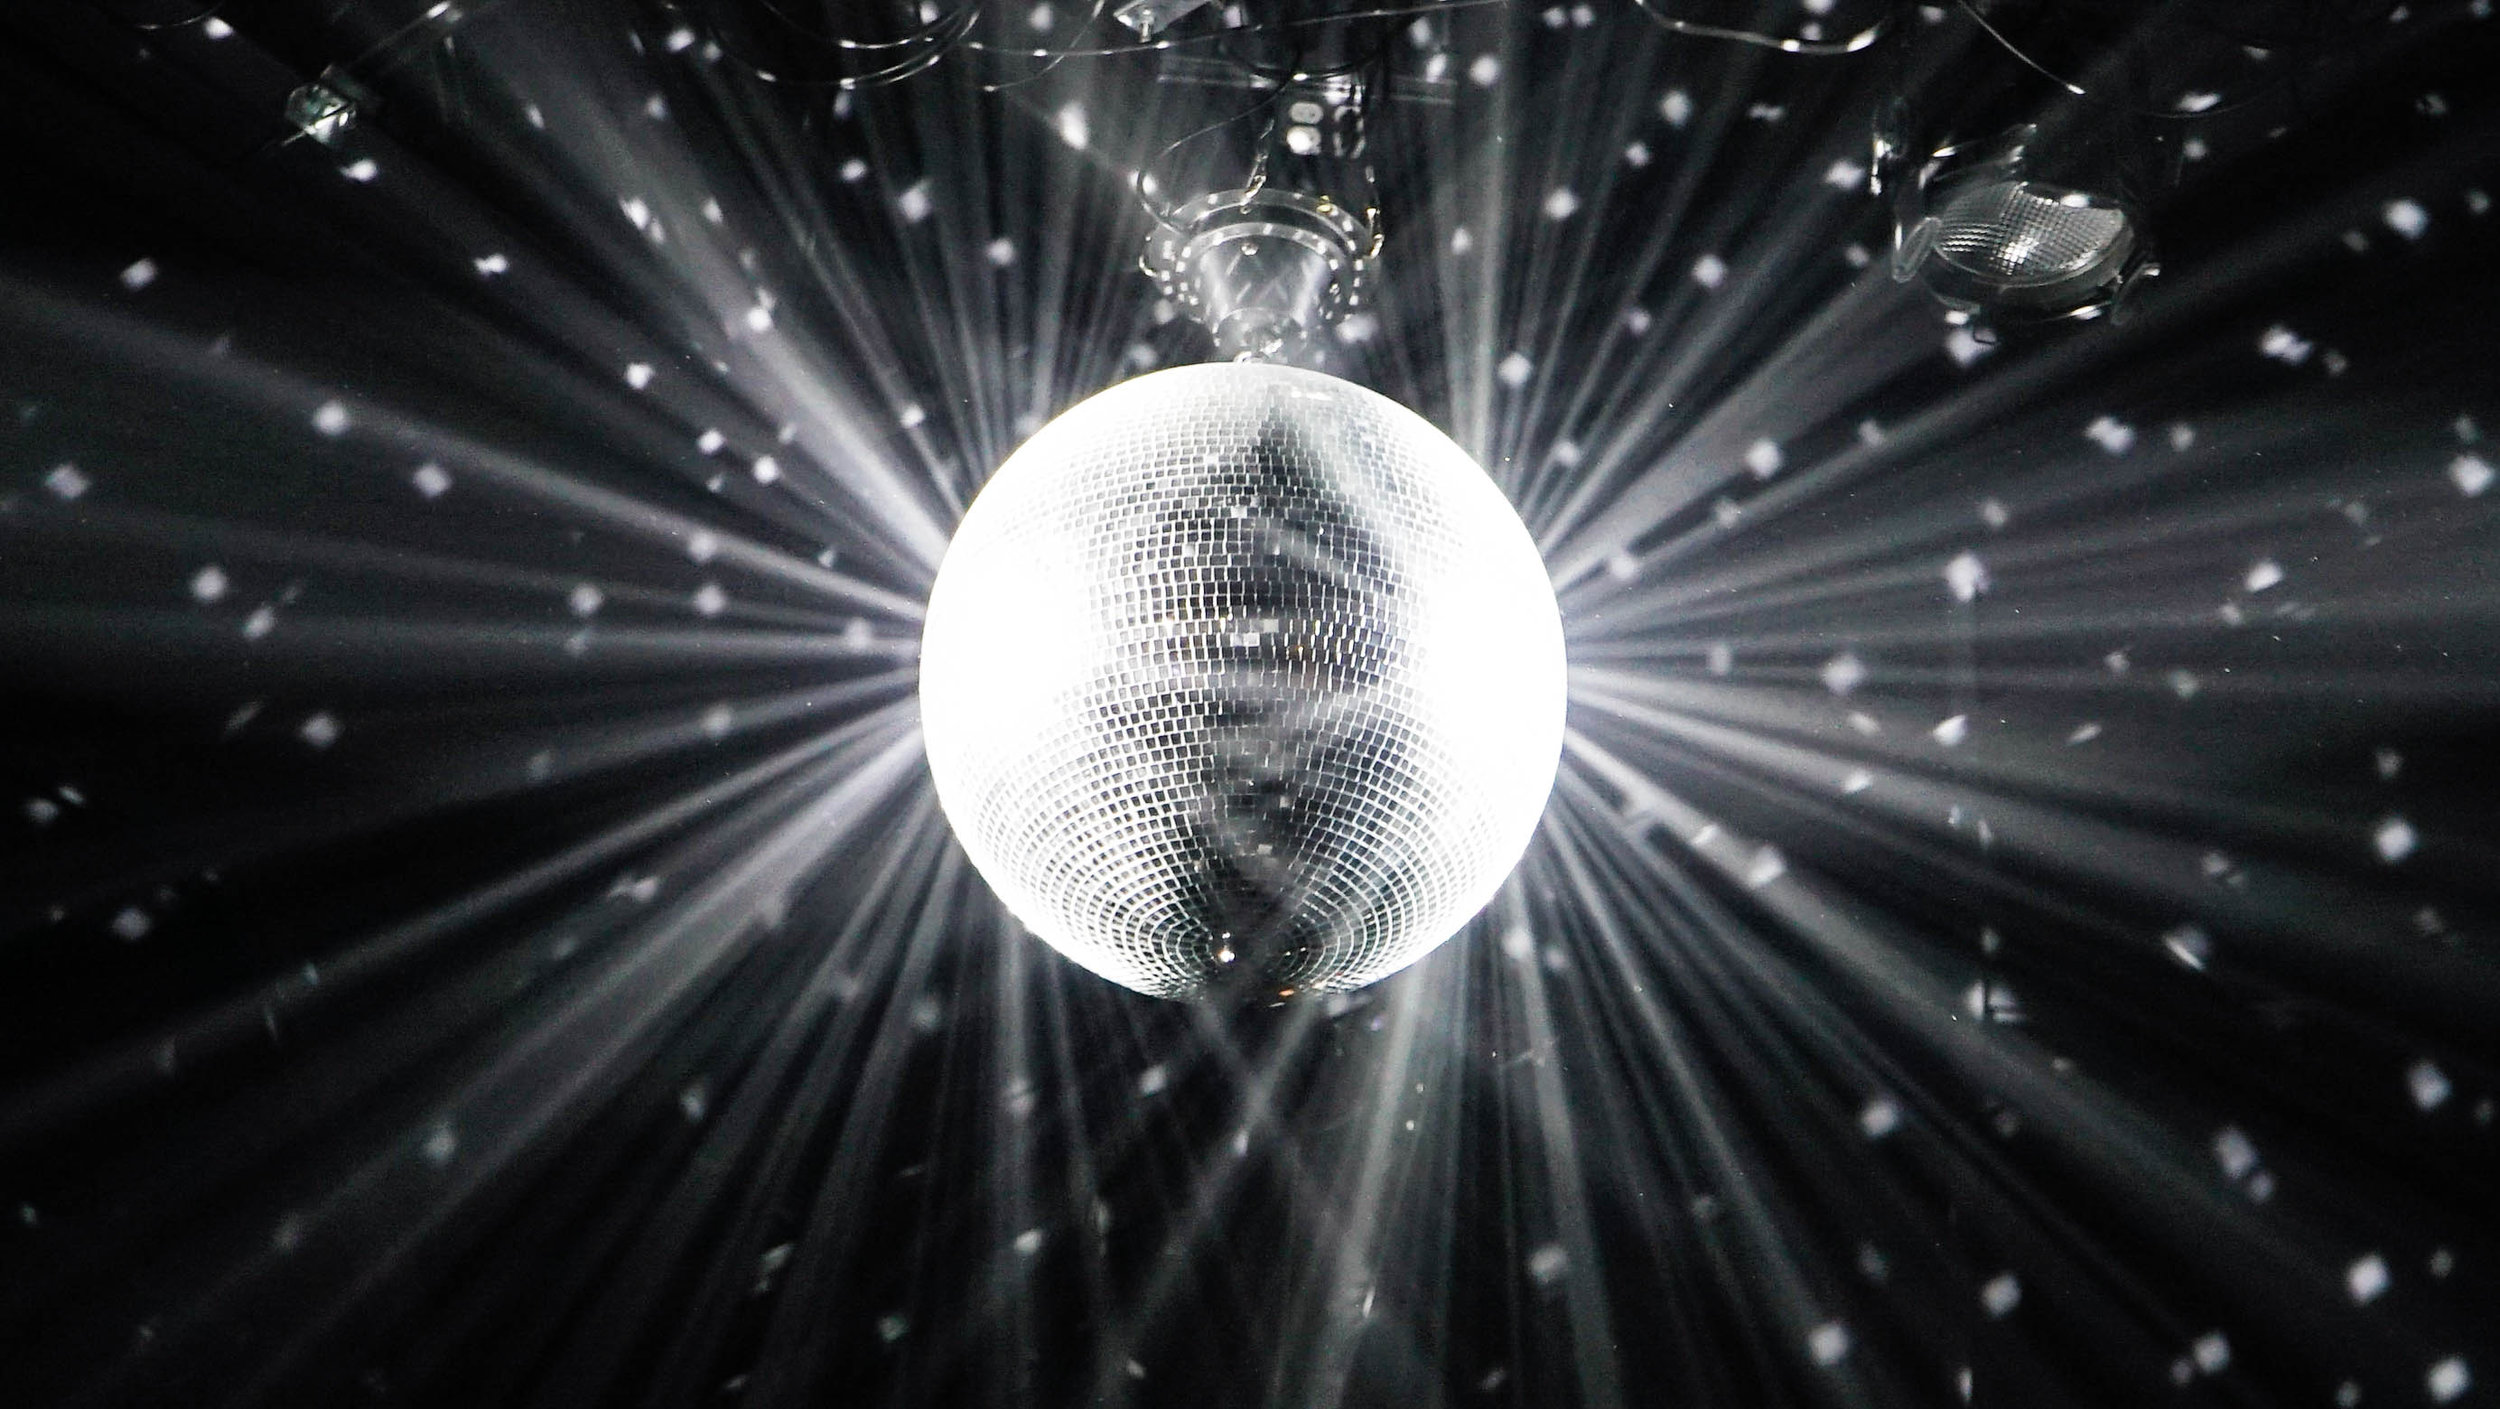 Disco Party - August 17th, 2019 7:00-8:30PM Silent Disco on a Boat!Come dance during sunset and into the night with our silent disco dance party on the water! We provide the headphones & cocktail prizes to best disco dancer.